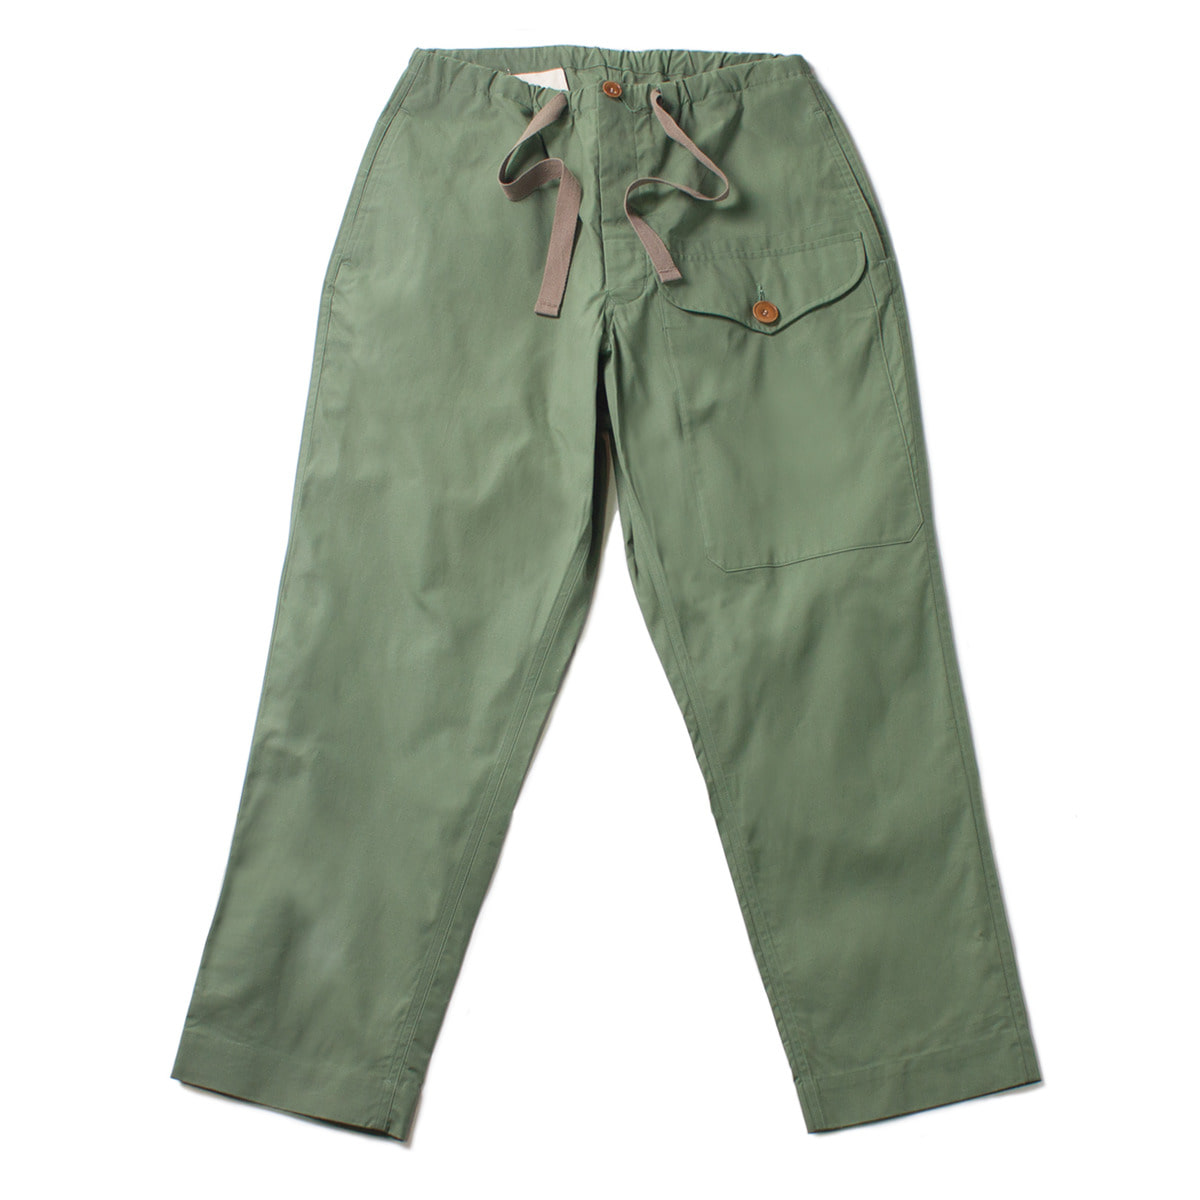 [HAVERSACK] HIGH DENSITY OXFORD PANTS 'OLIVE'